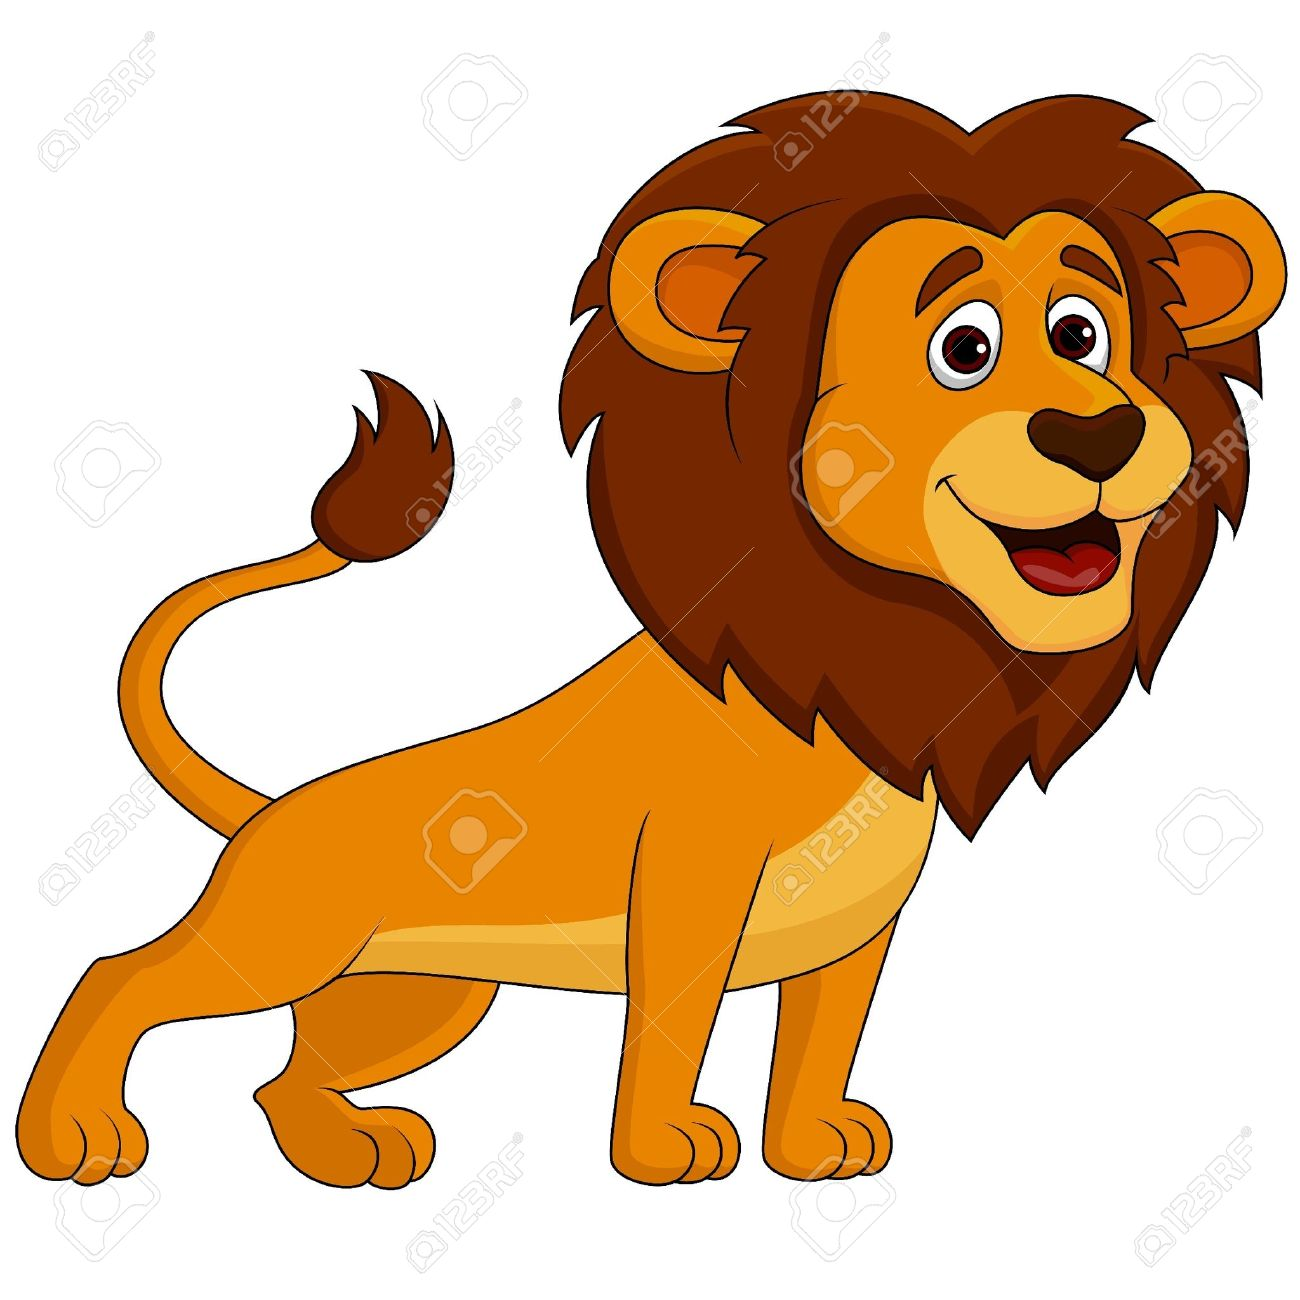 cute lion cartoon royalty free cliparts vectors and stock rh 123rf com cute lion head clipart cute baby lion clipart